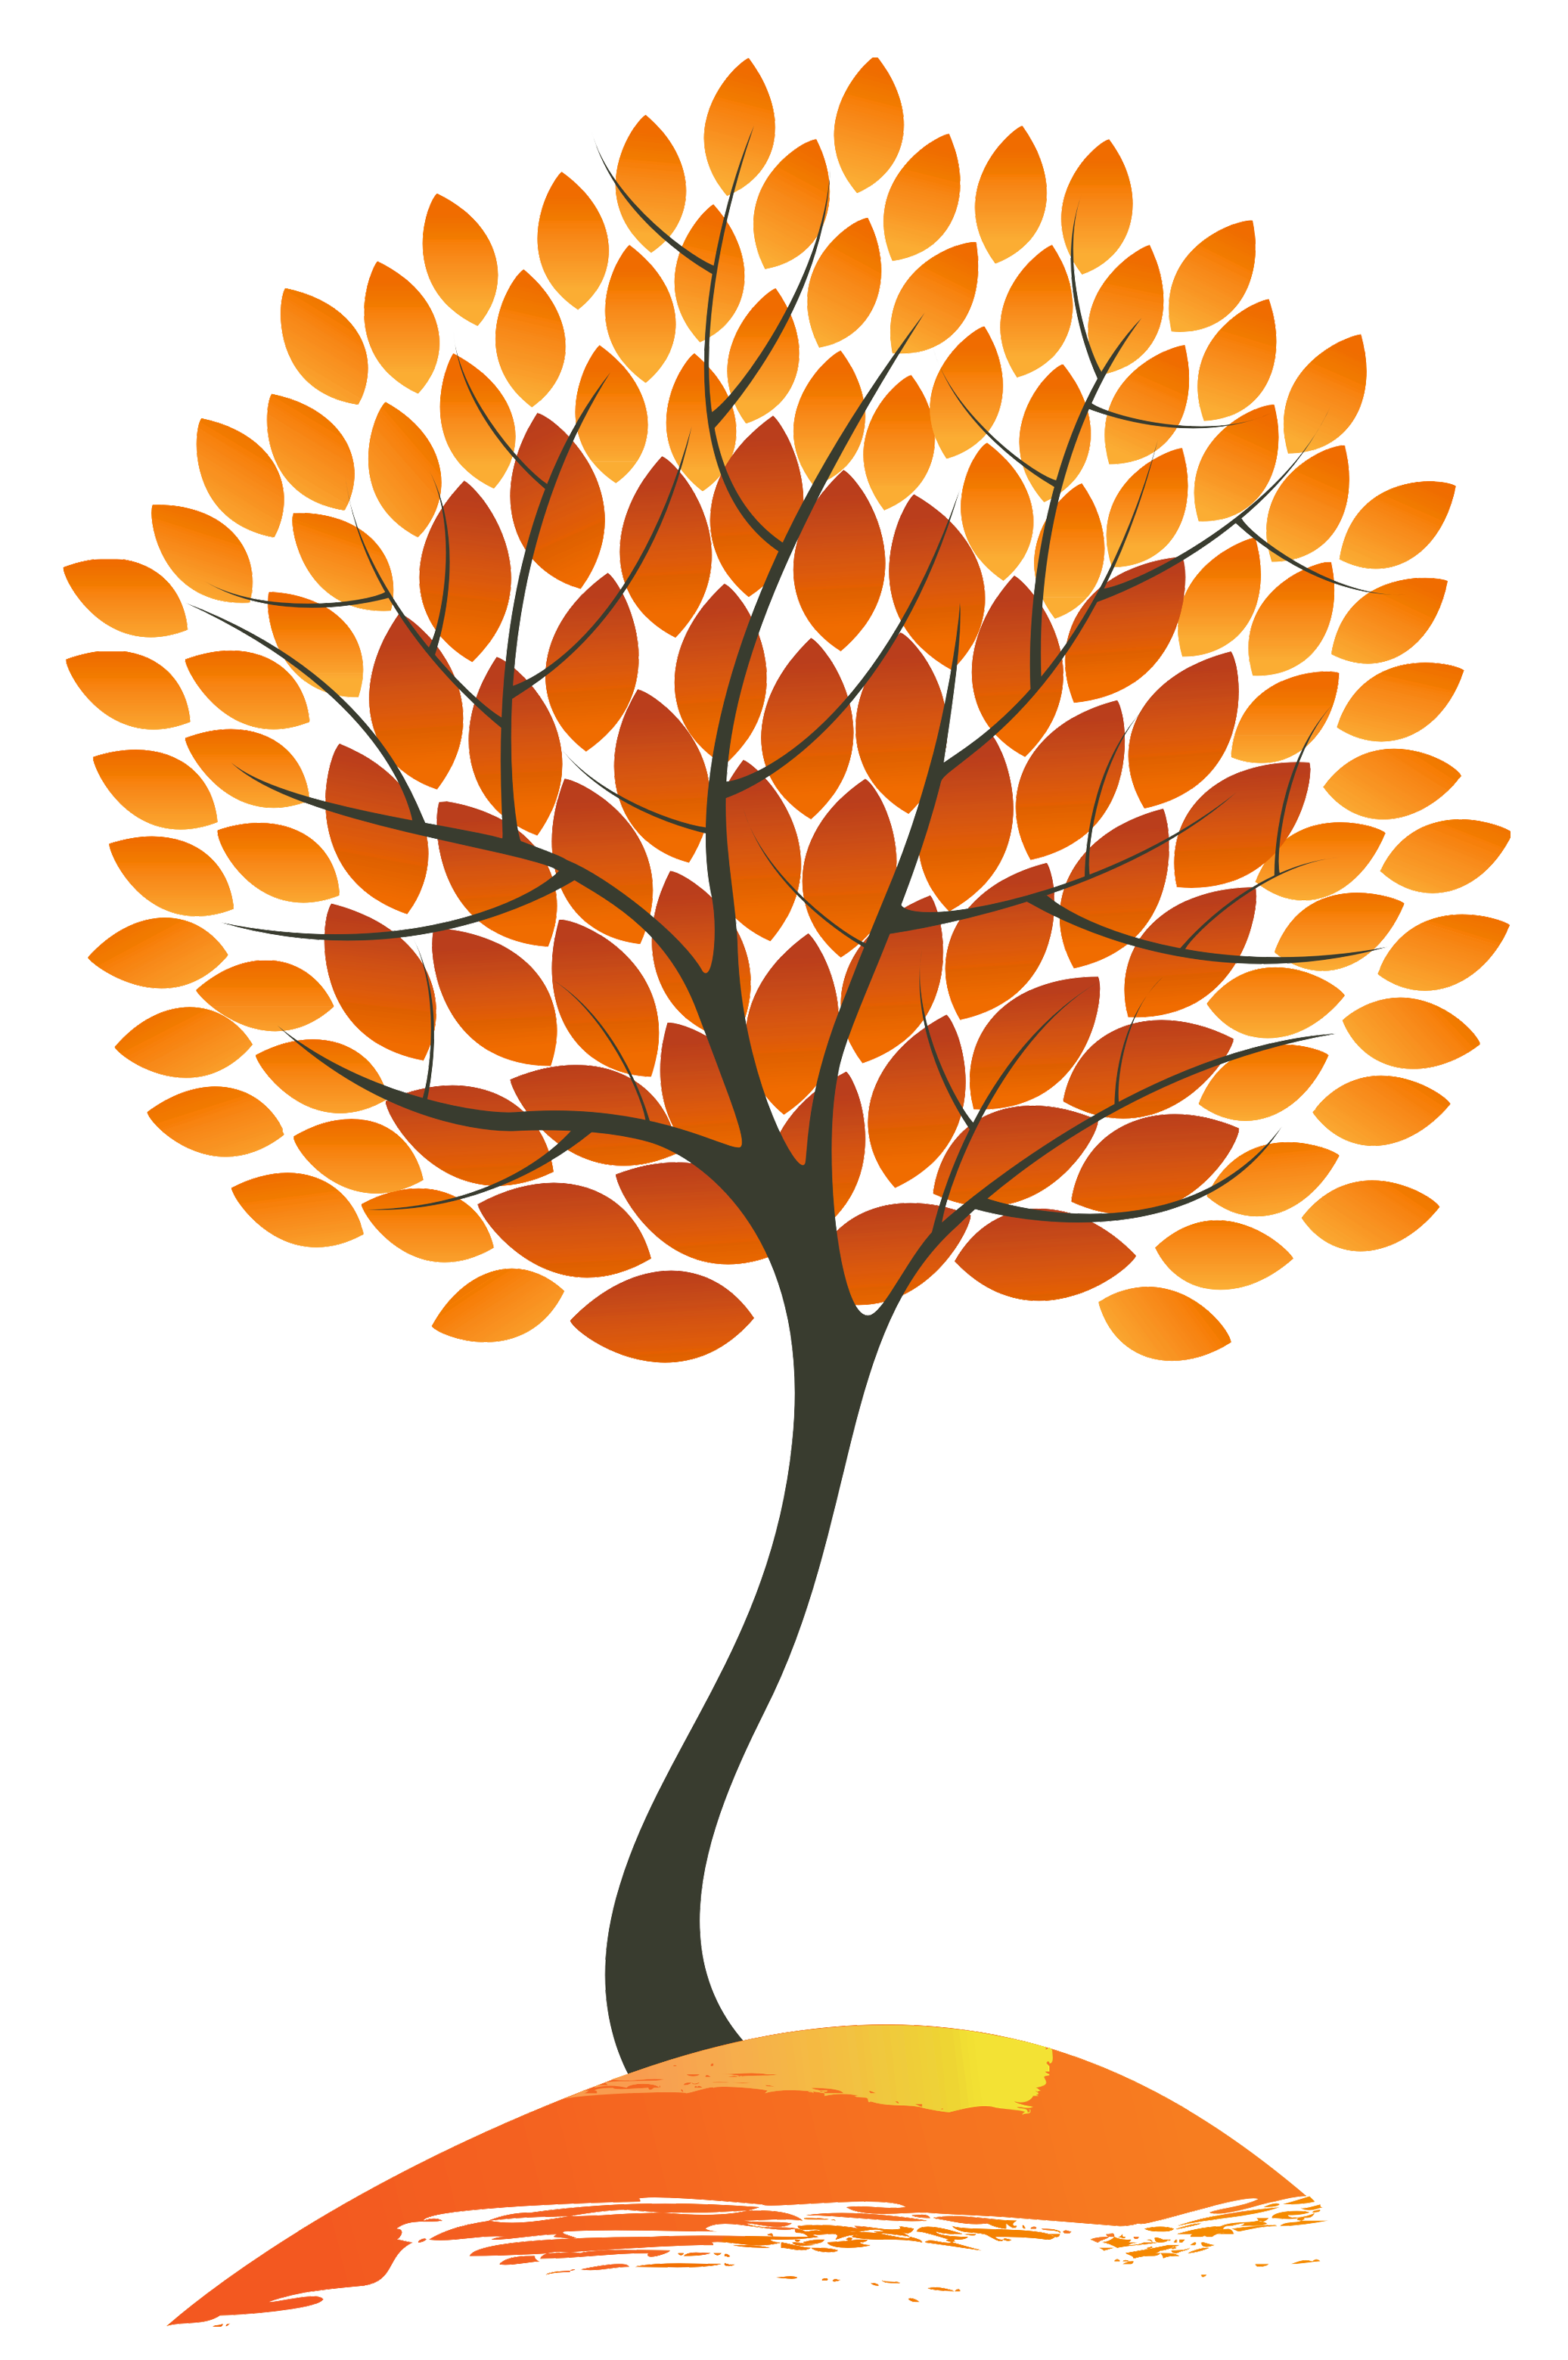 Autumn tree png. Clipart image gallery yopriceville